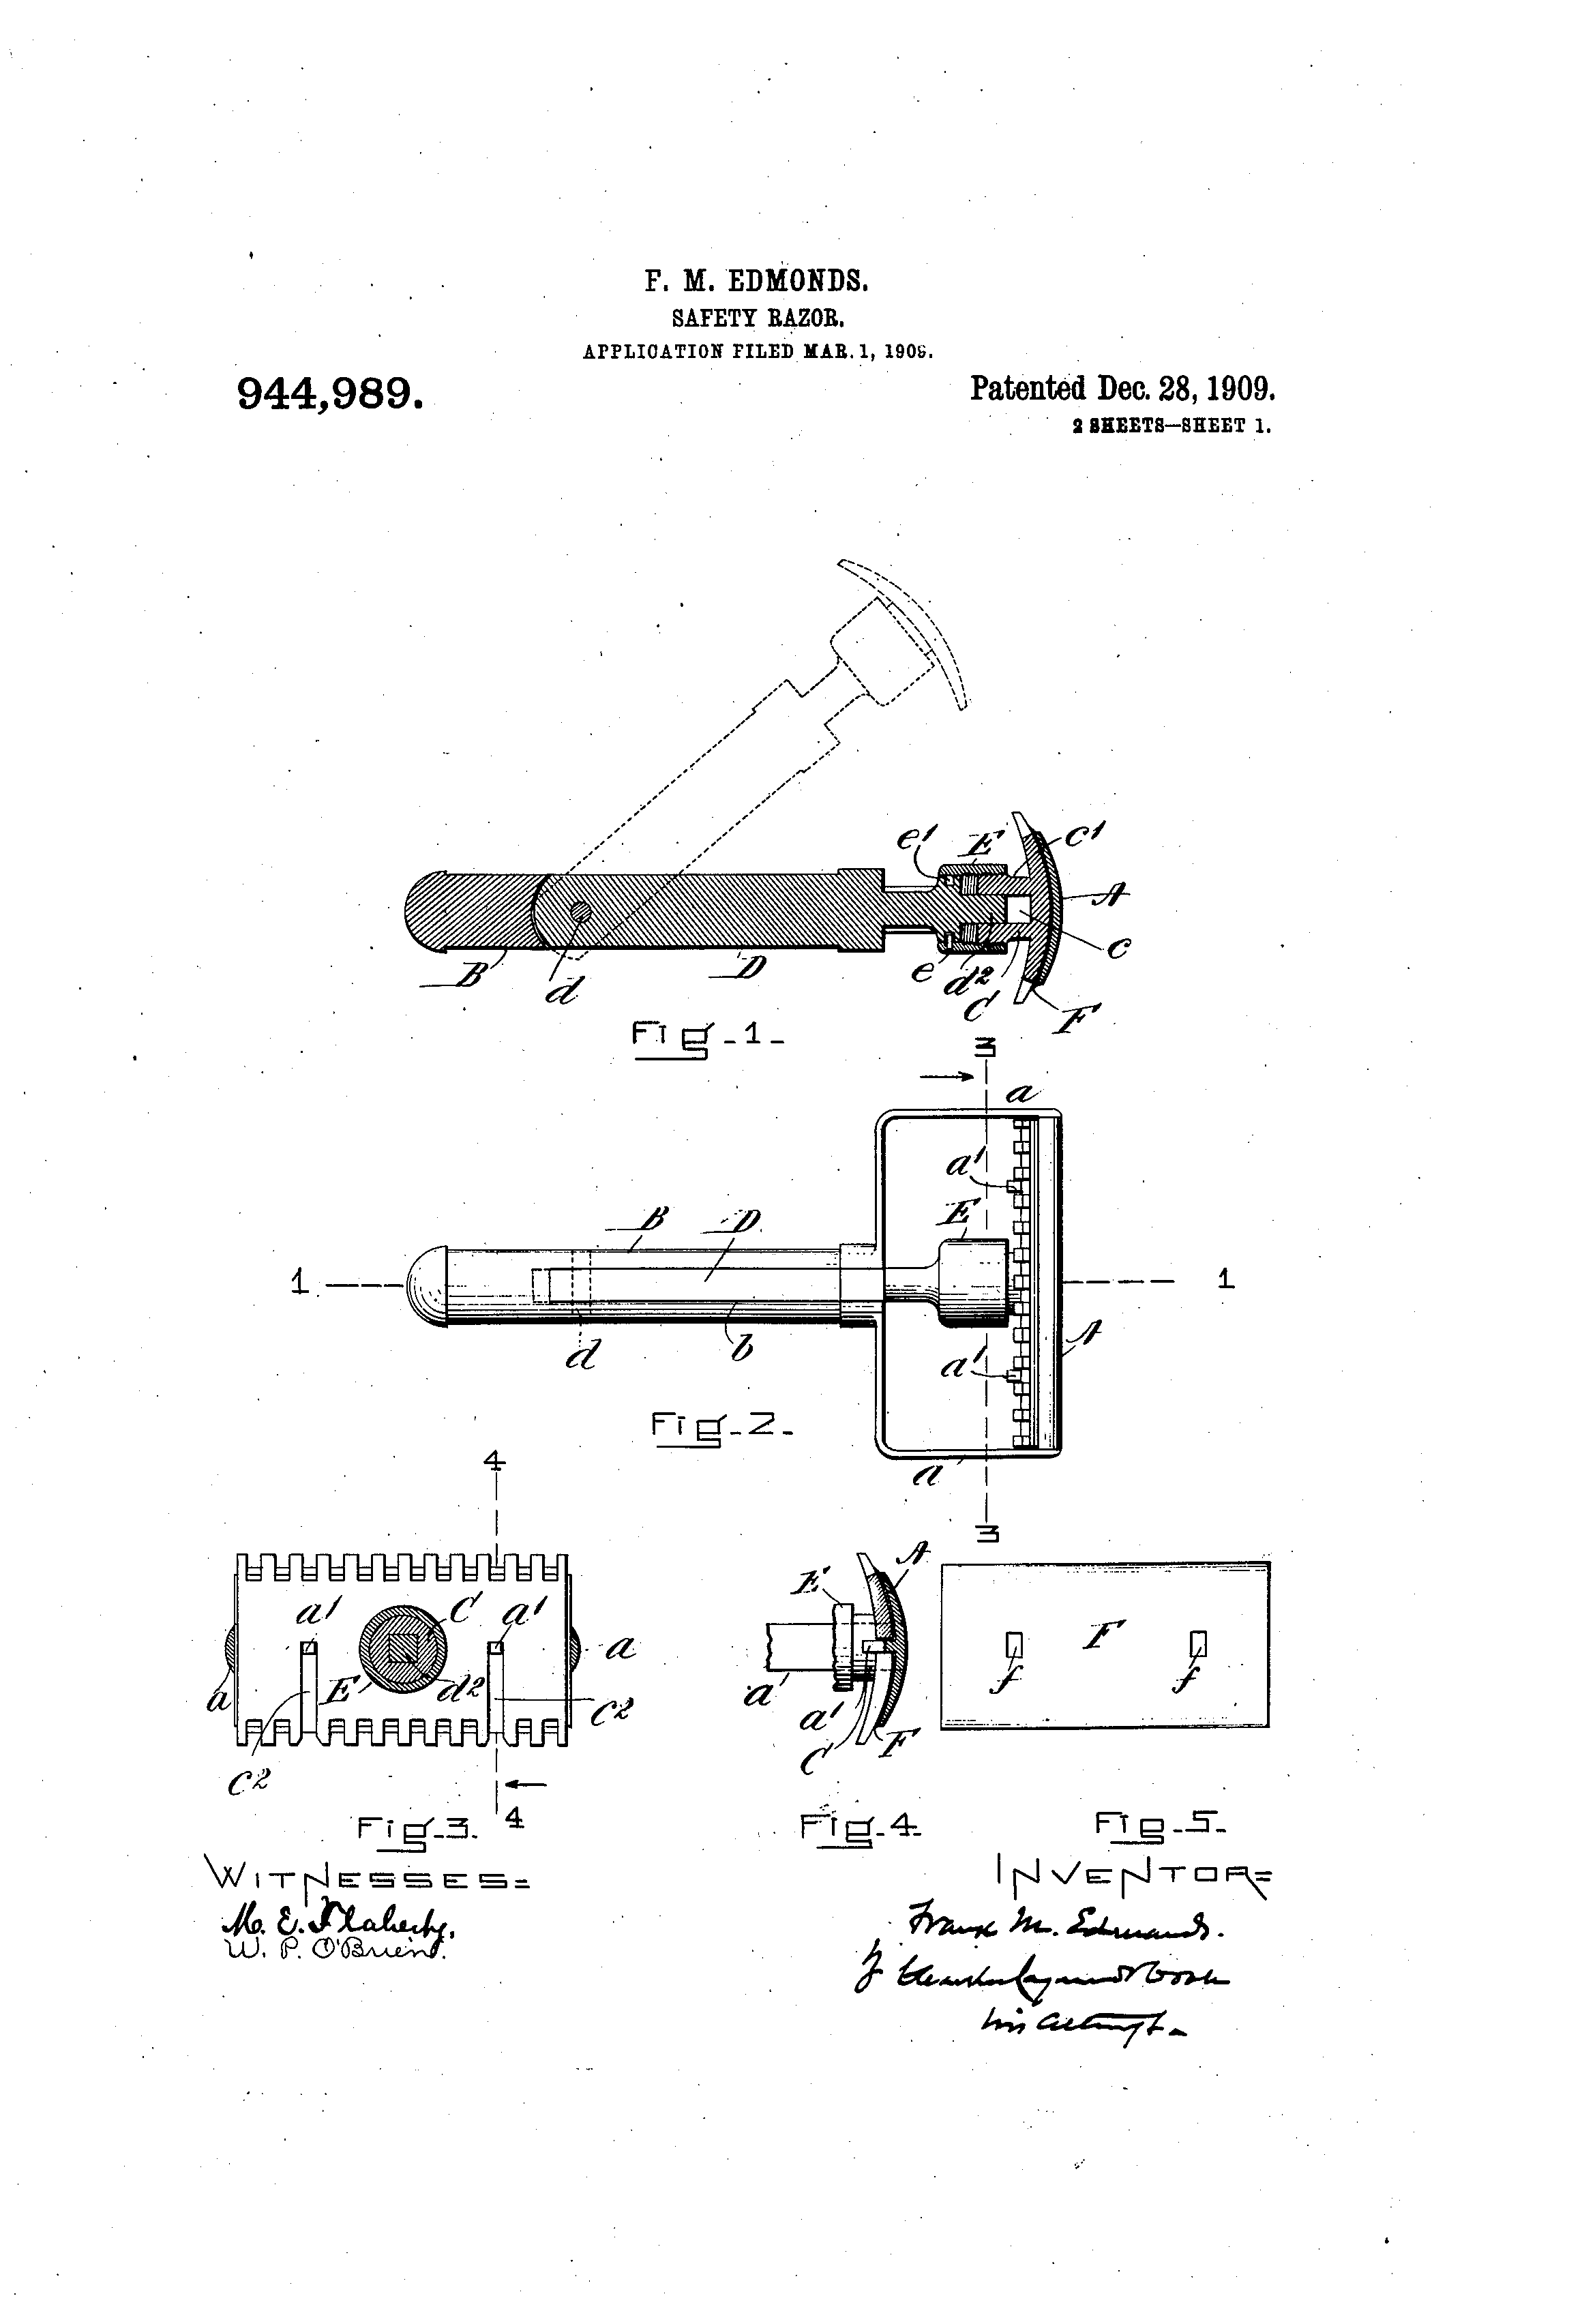 [Image: US944989-drawings-page-1.png]